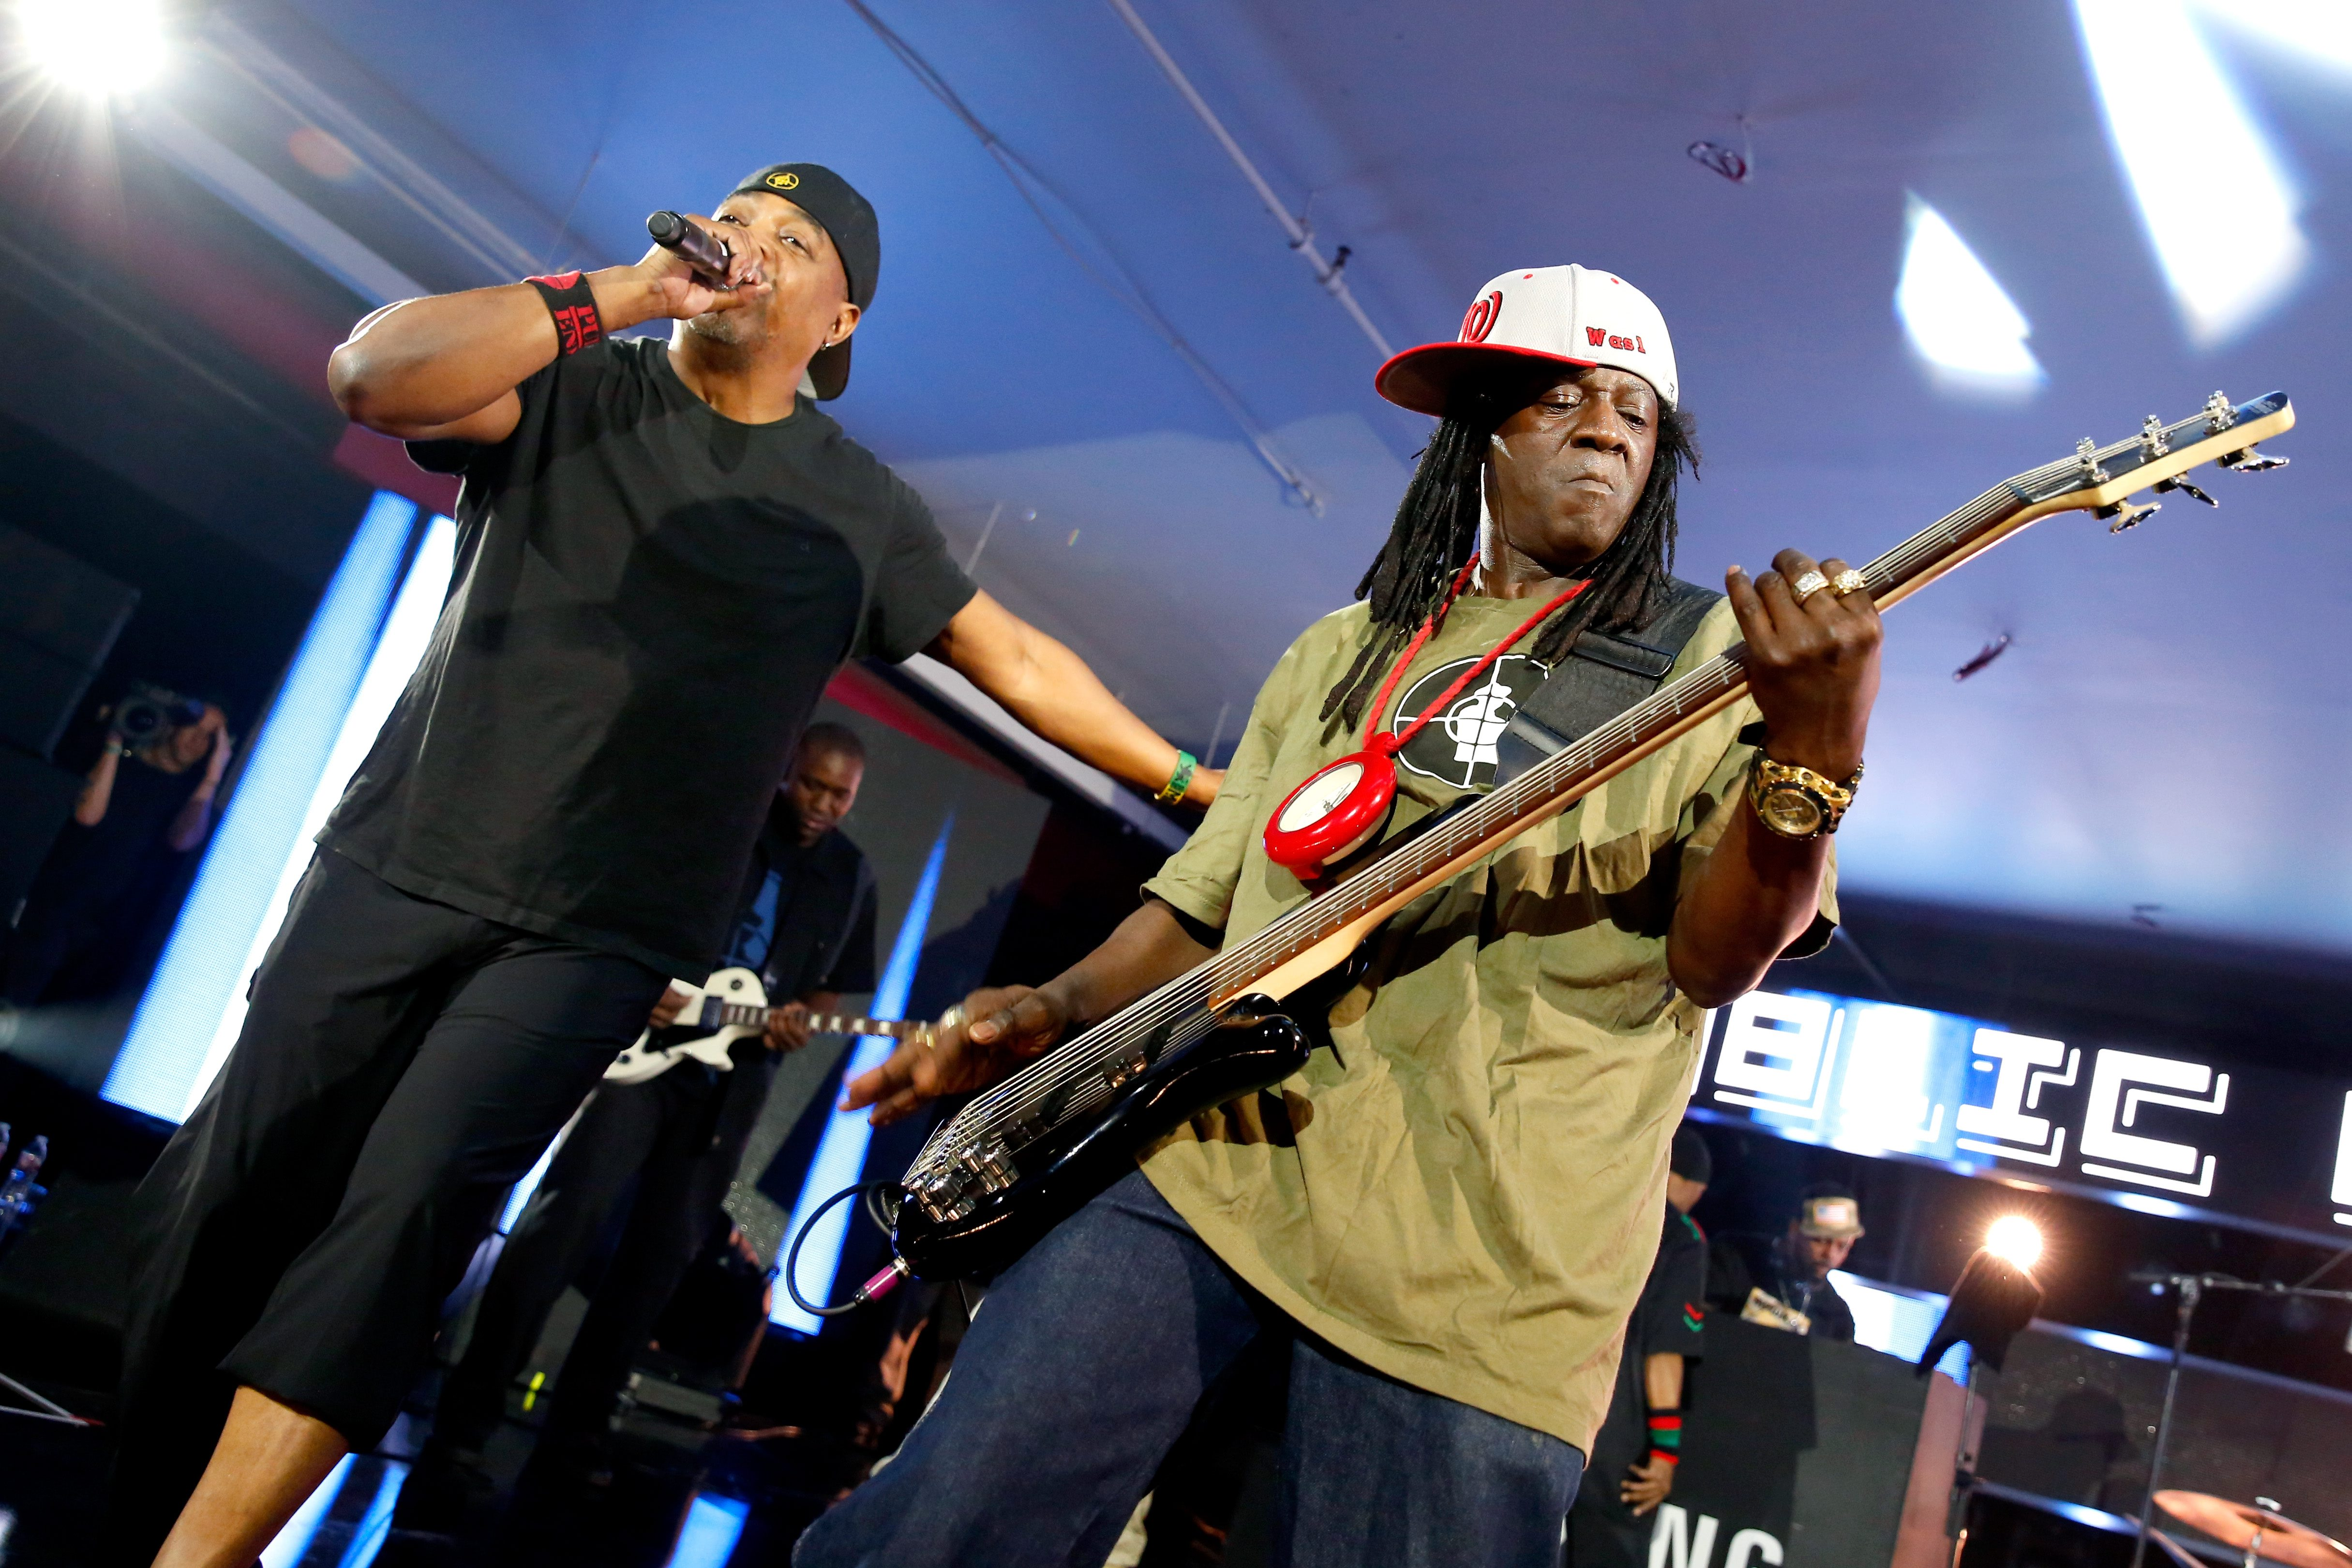 AUSTIN, TX - MARCH 12: Rappers Chuck D (L) and Flavor Flav of Public Enemy perform onstage at Samsung Galaxy Life Fest at SXSW 2016 on March 12, 2016 in Austin, Texas. (Photo by Rick Kern/Getty Images for Samsung)